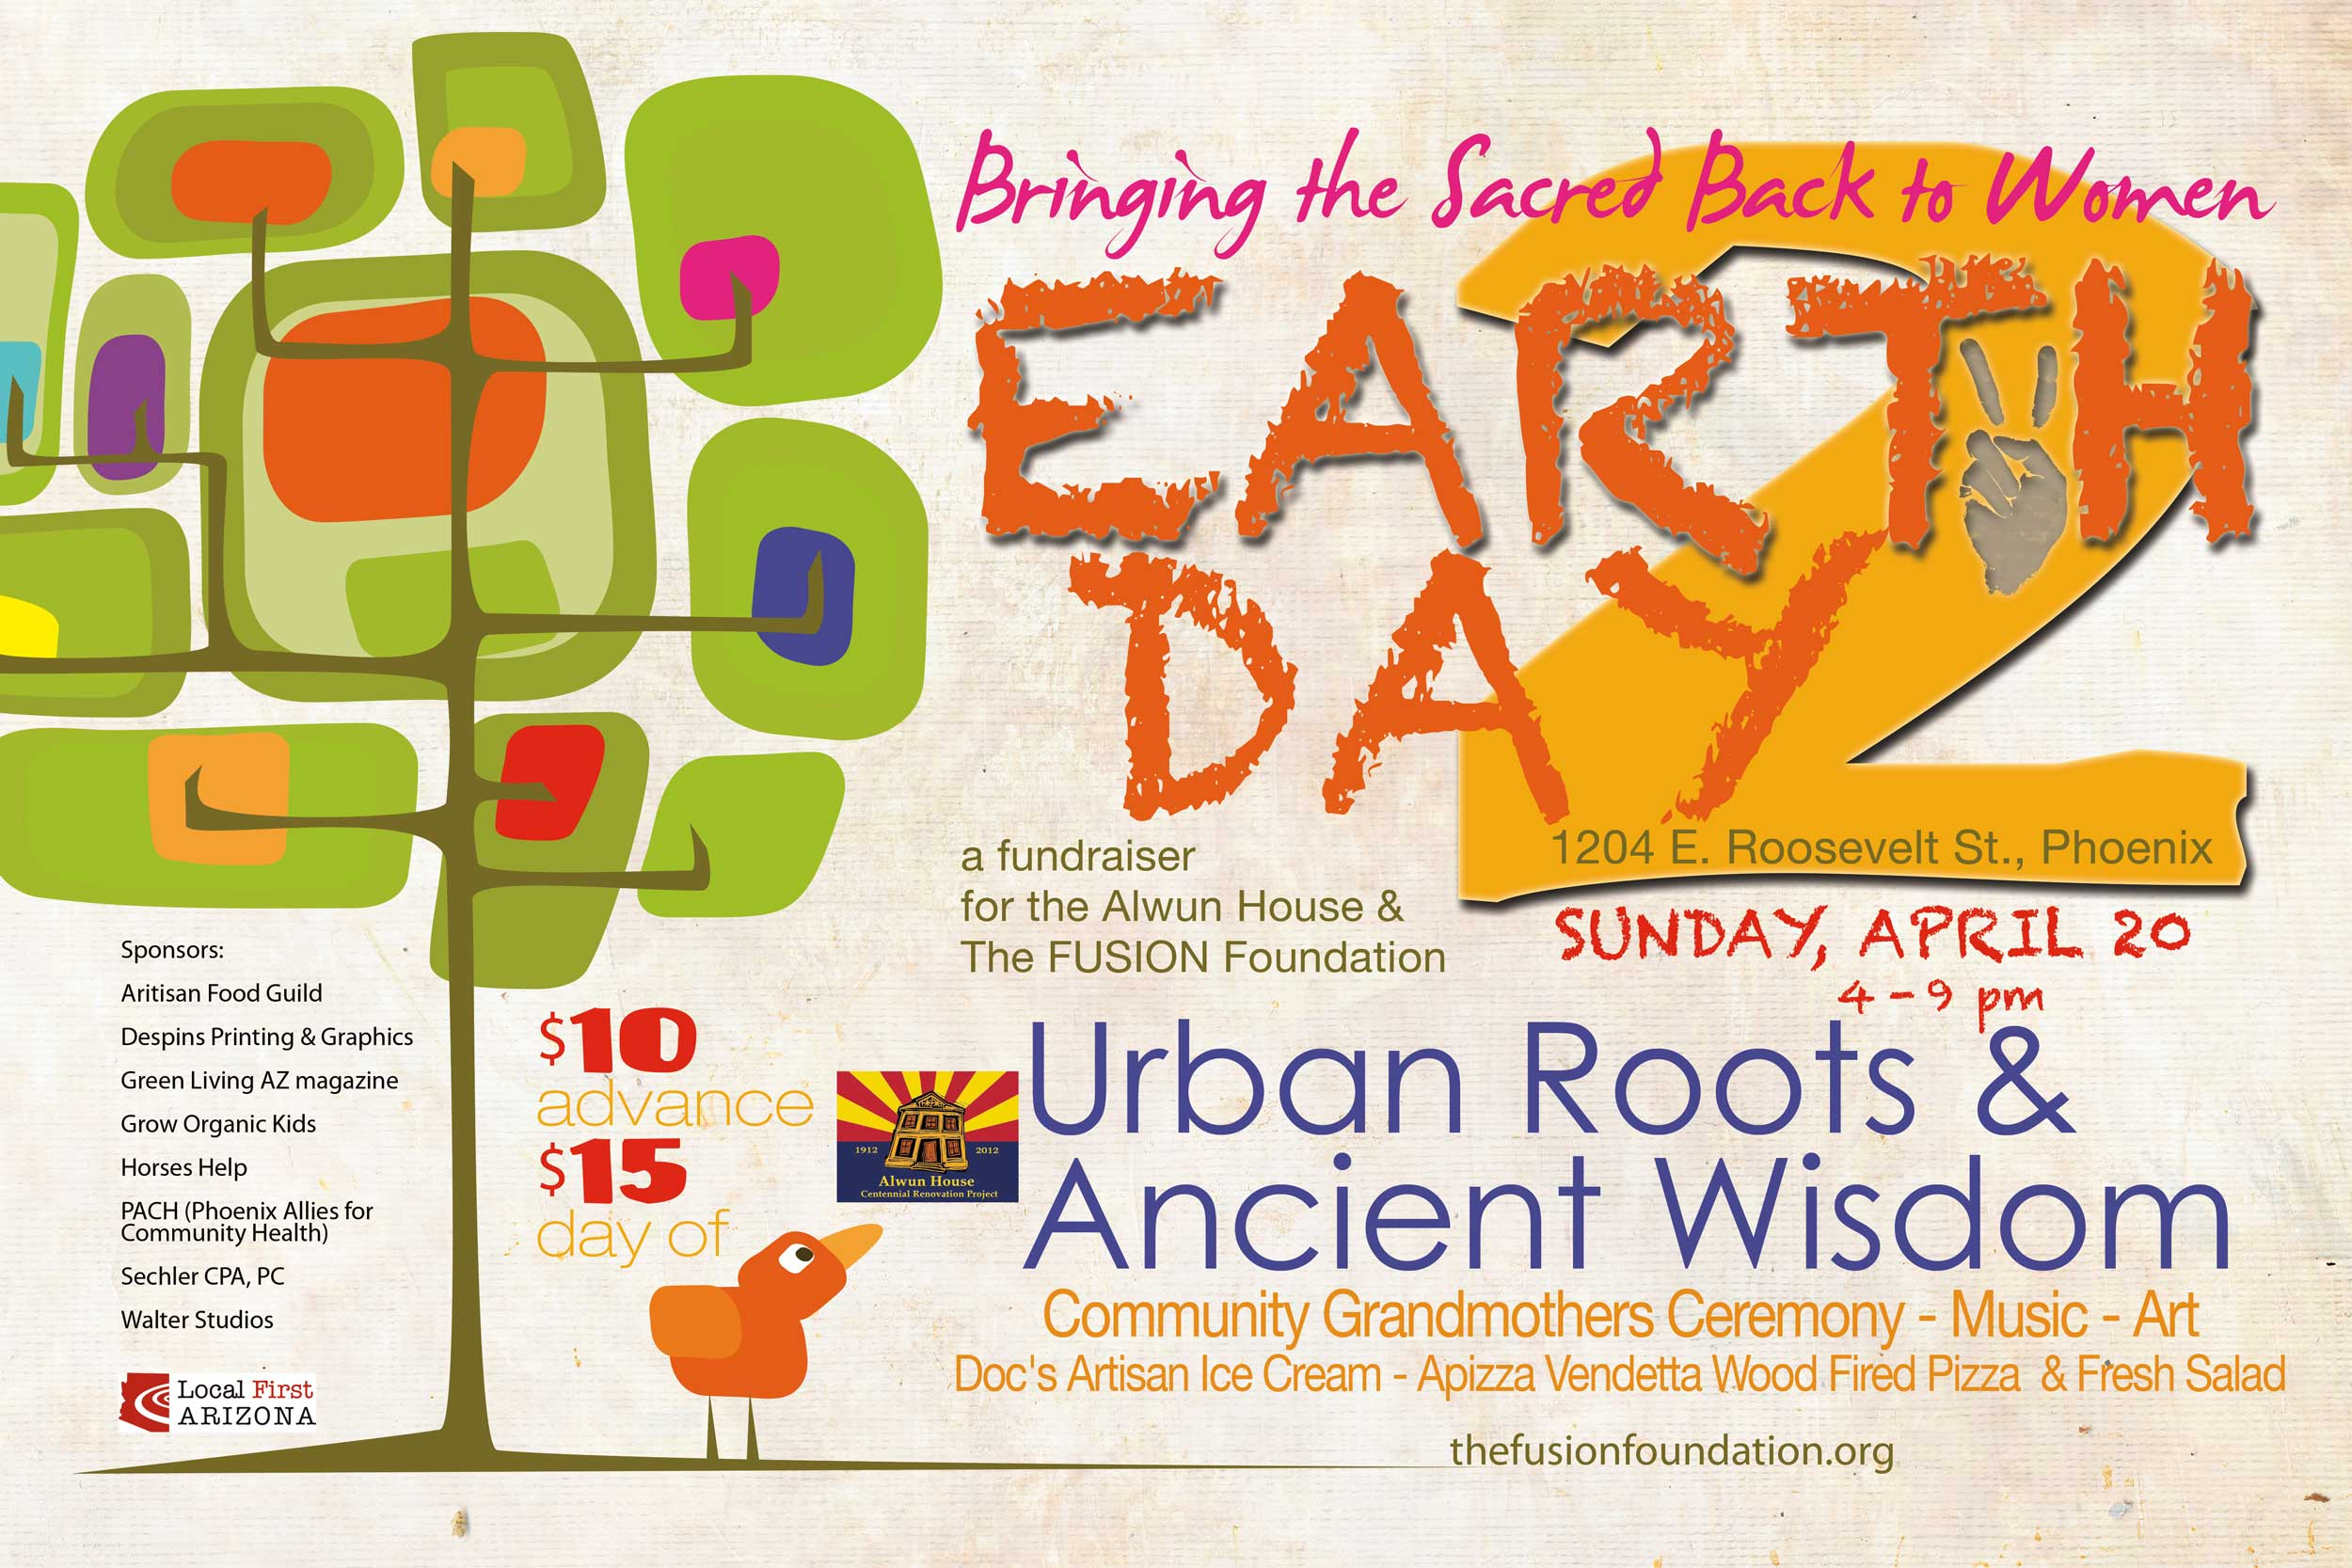 Earth Day 2014 Alwun House FUSION Foundation